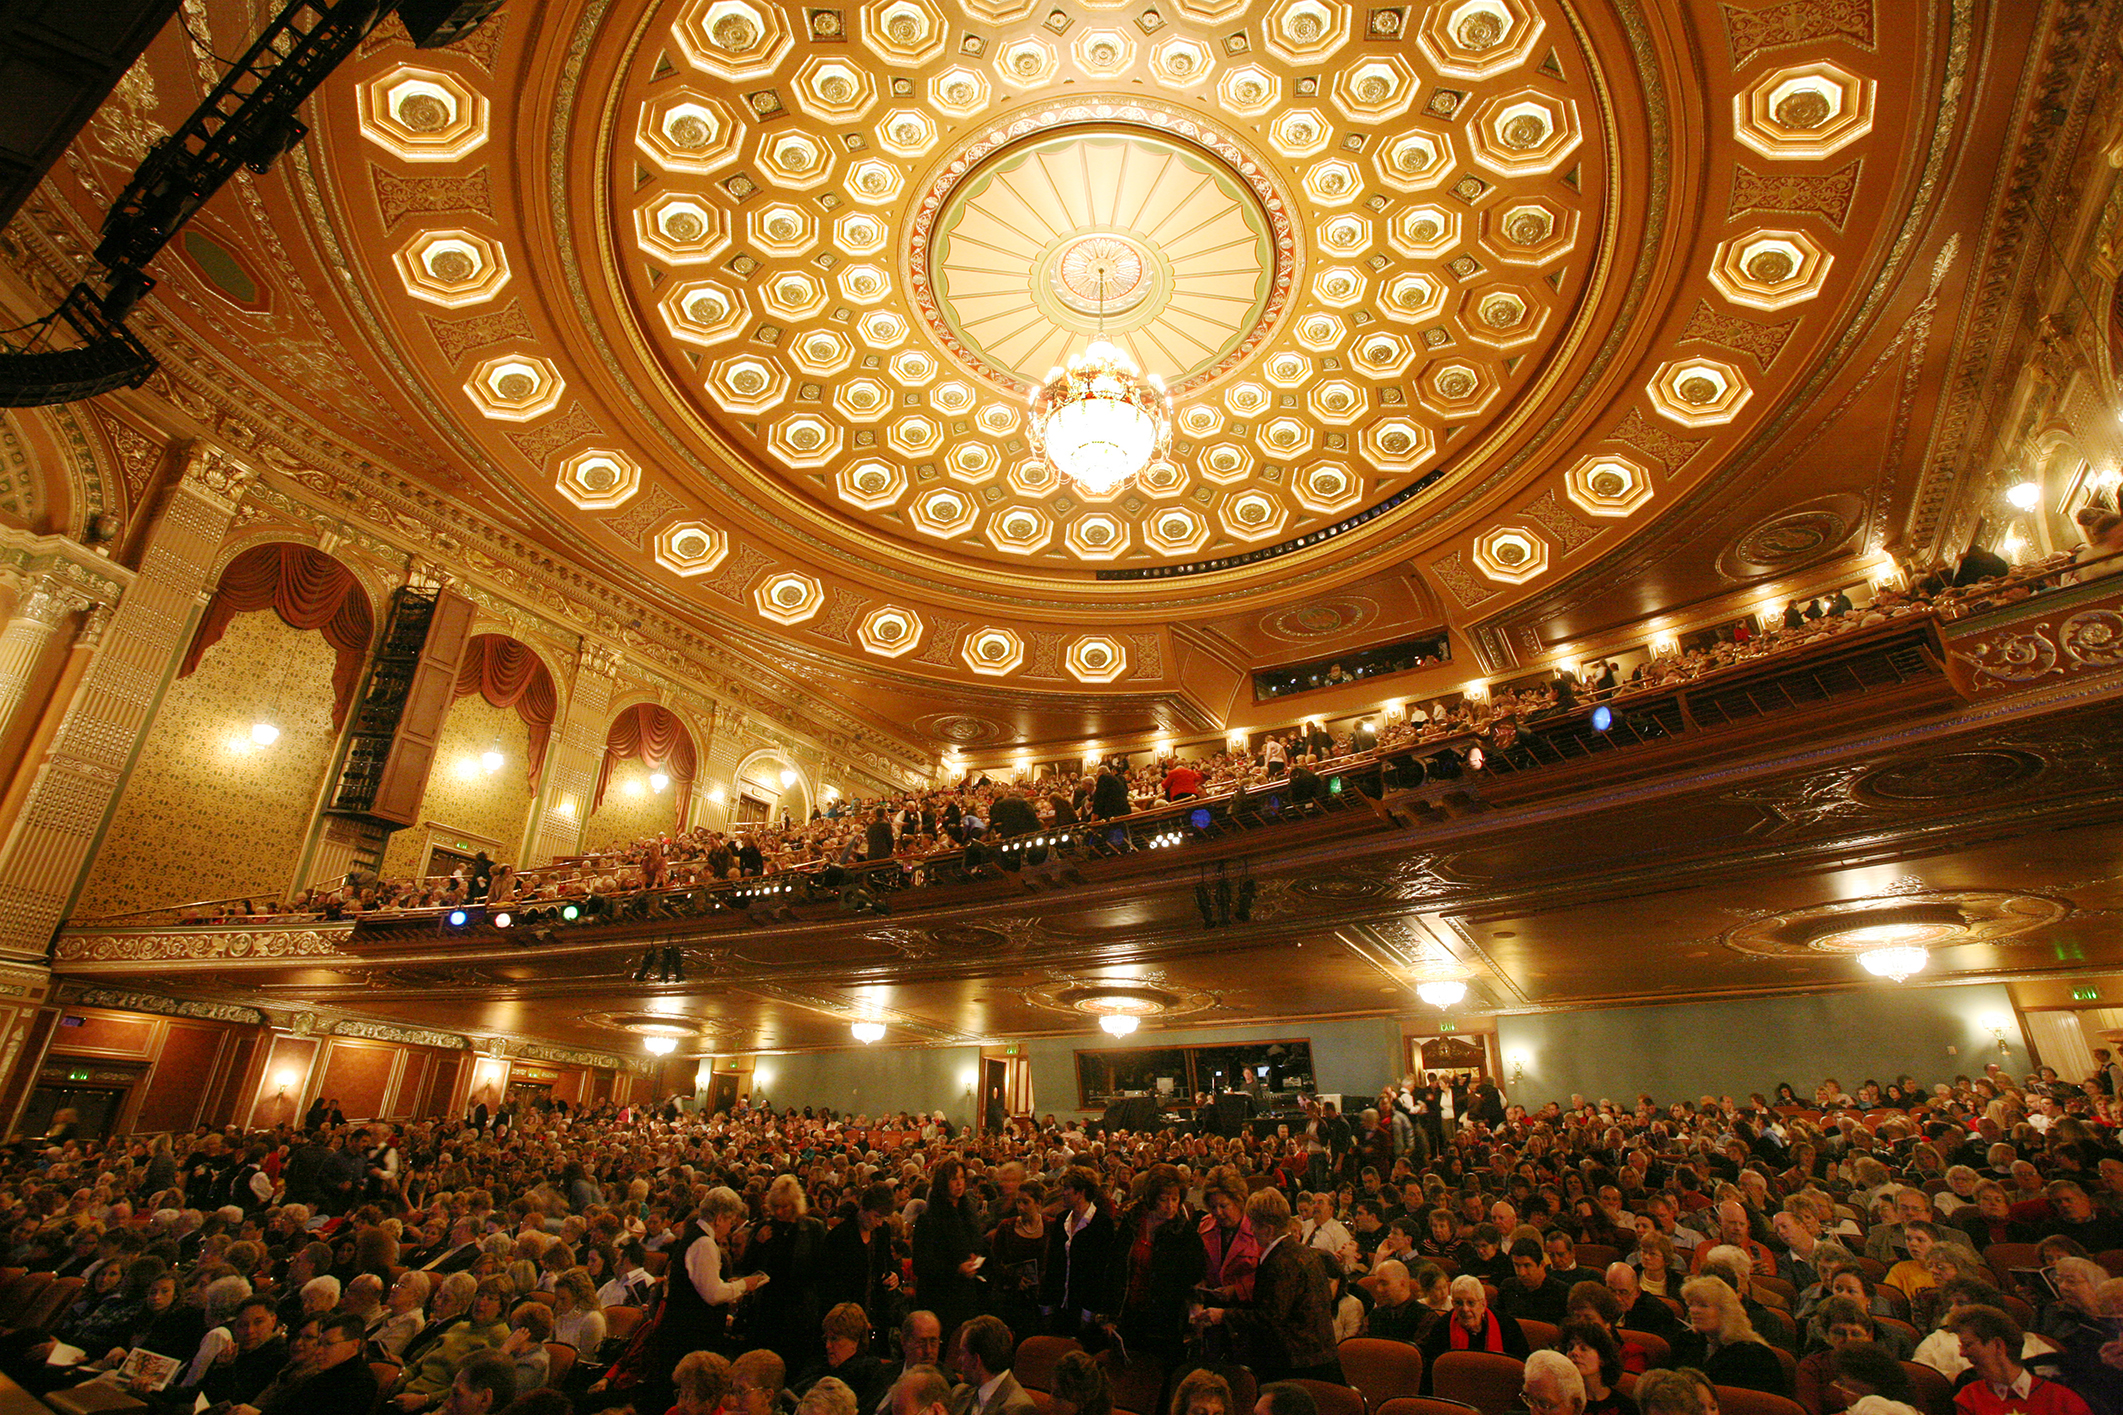 The ceiling of the Benedum Center concert hall, featuring ornate gold designs and a large, brightly-lit chandelier.